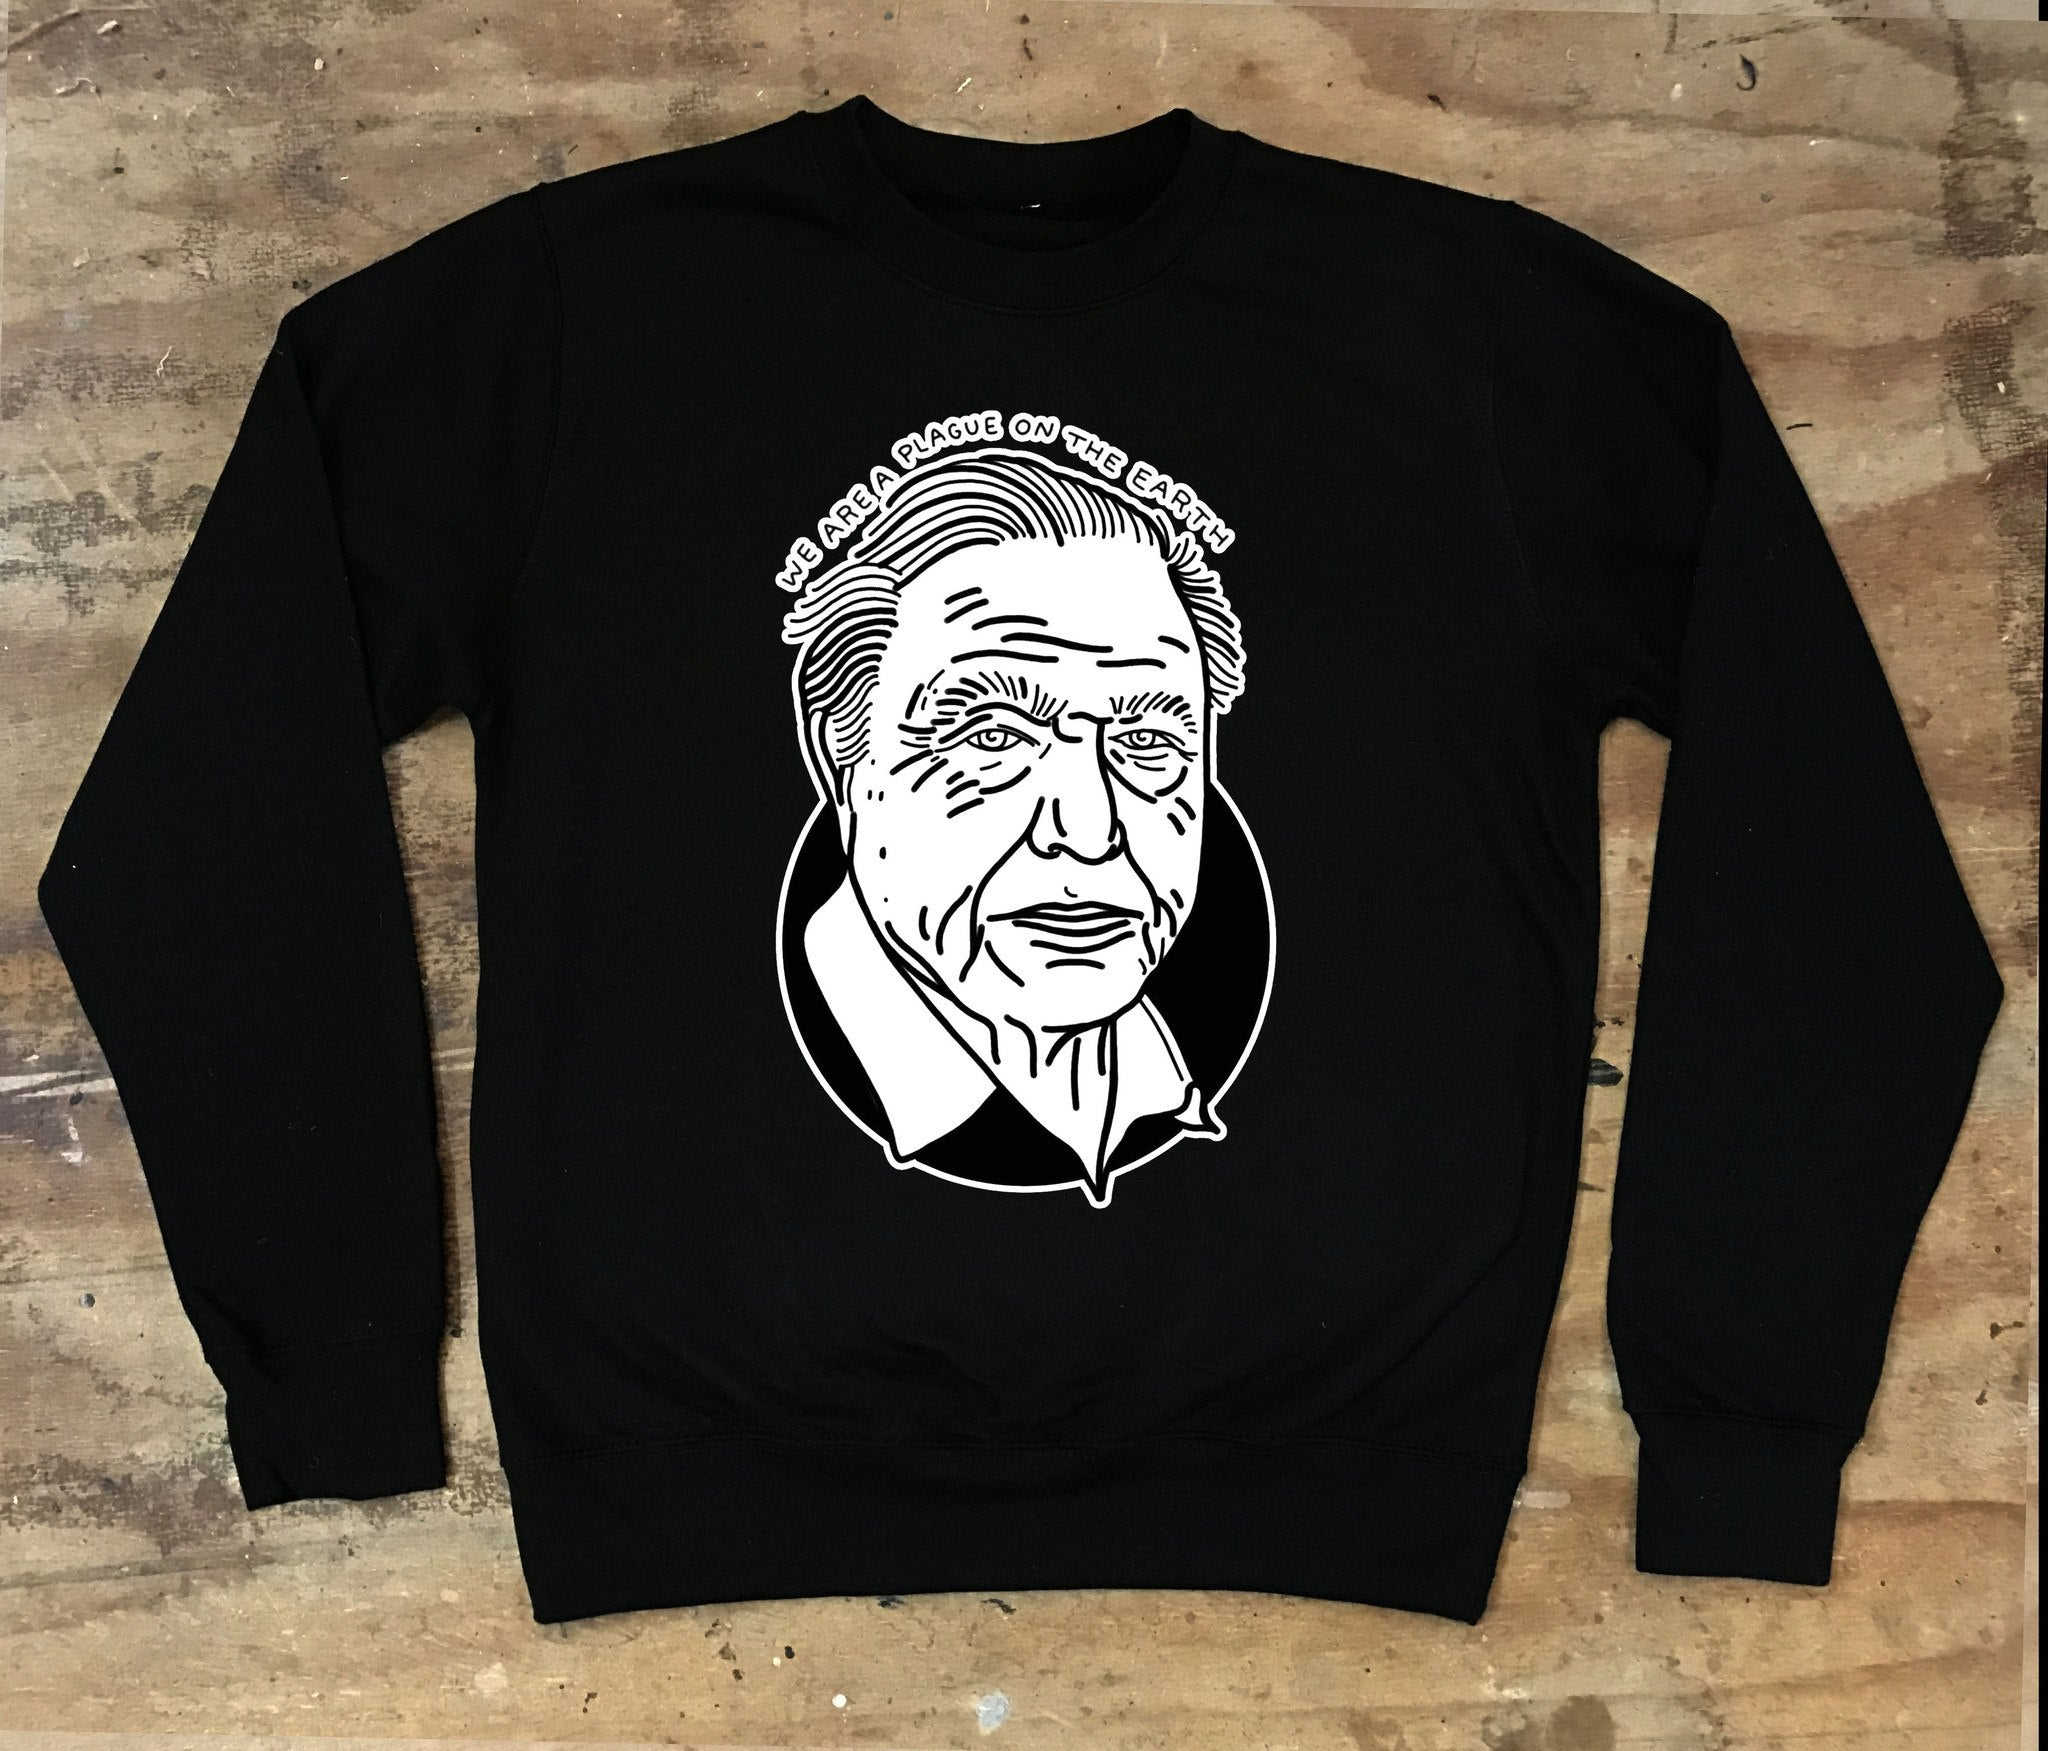 Sir David Attenborough - We Are A Plague On The Earth Crew Neck Sweater - Jiggle Apparel